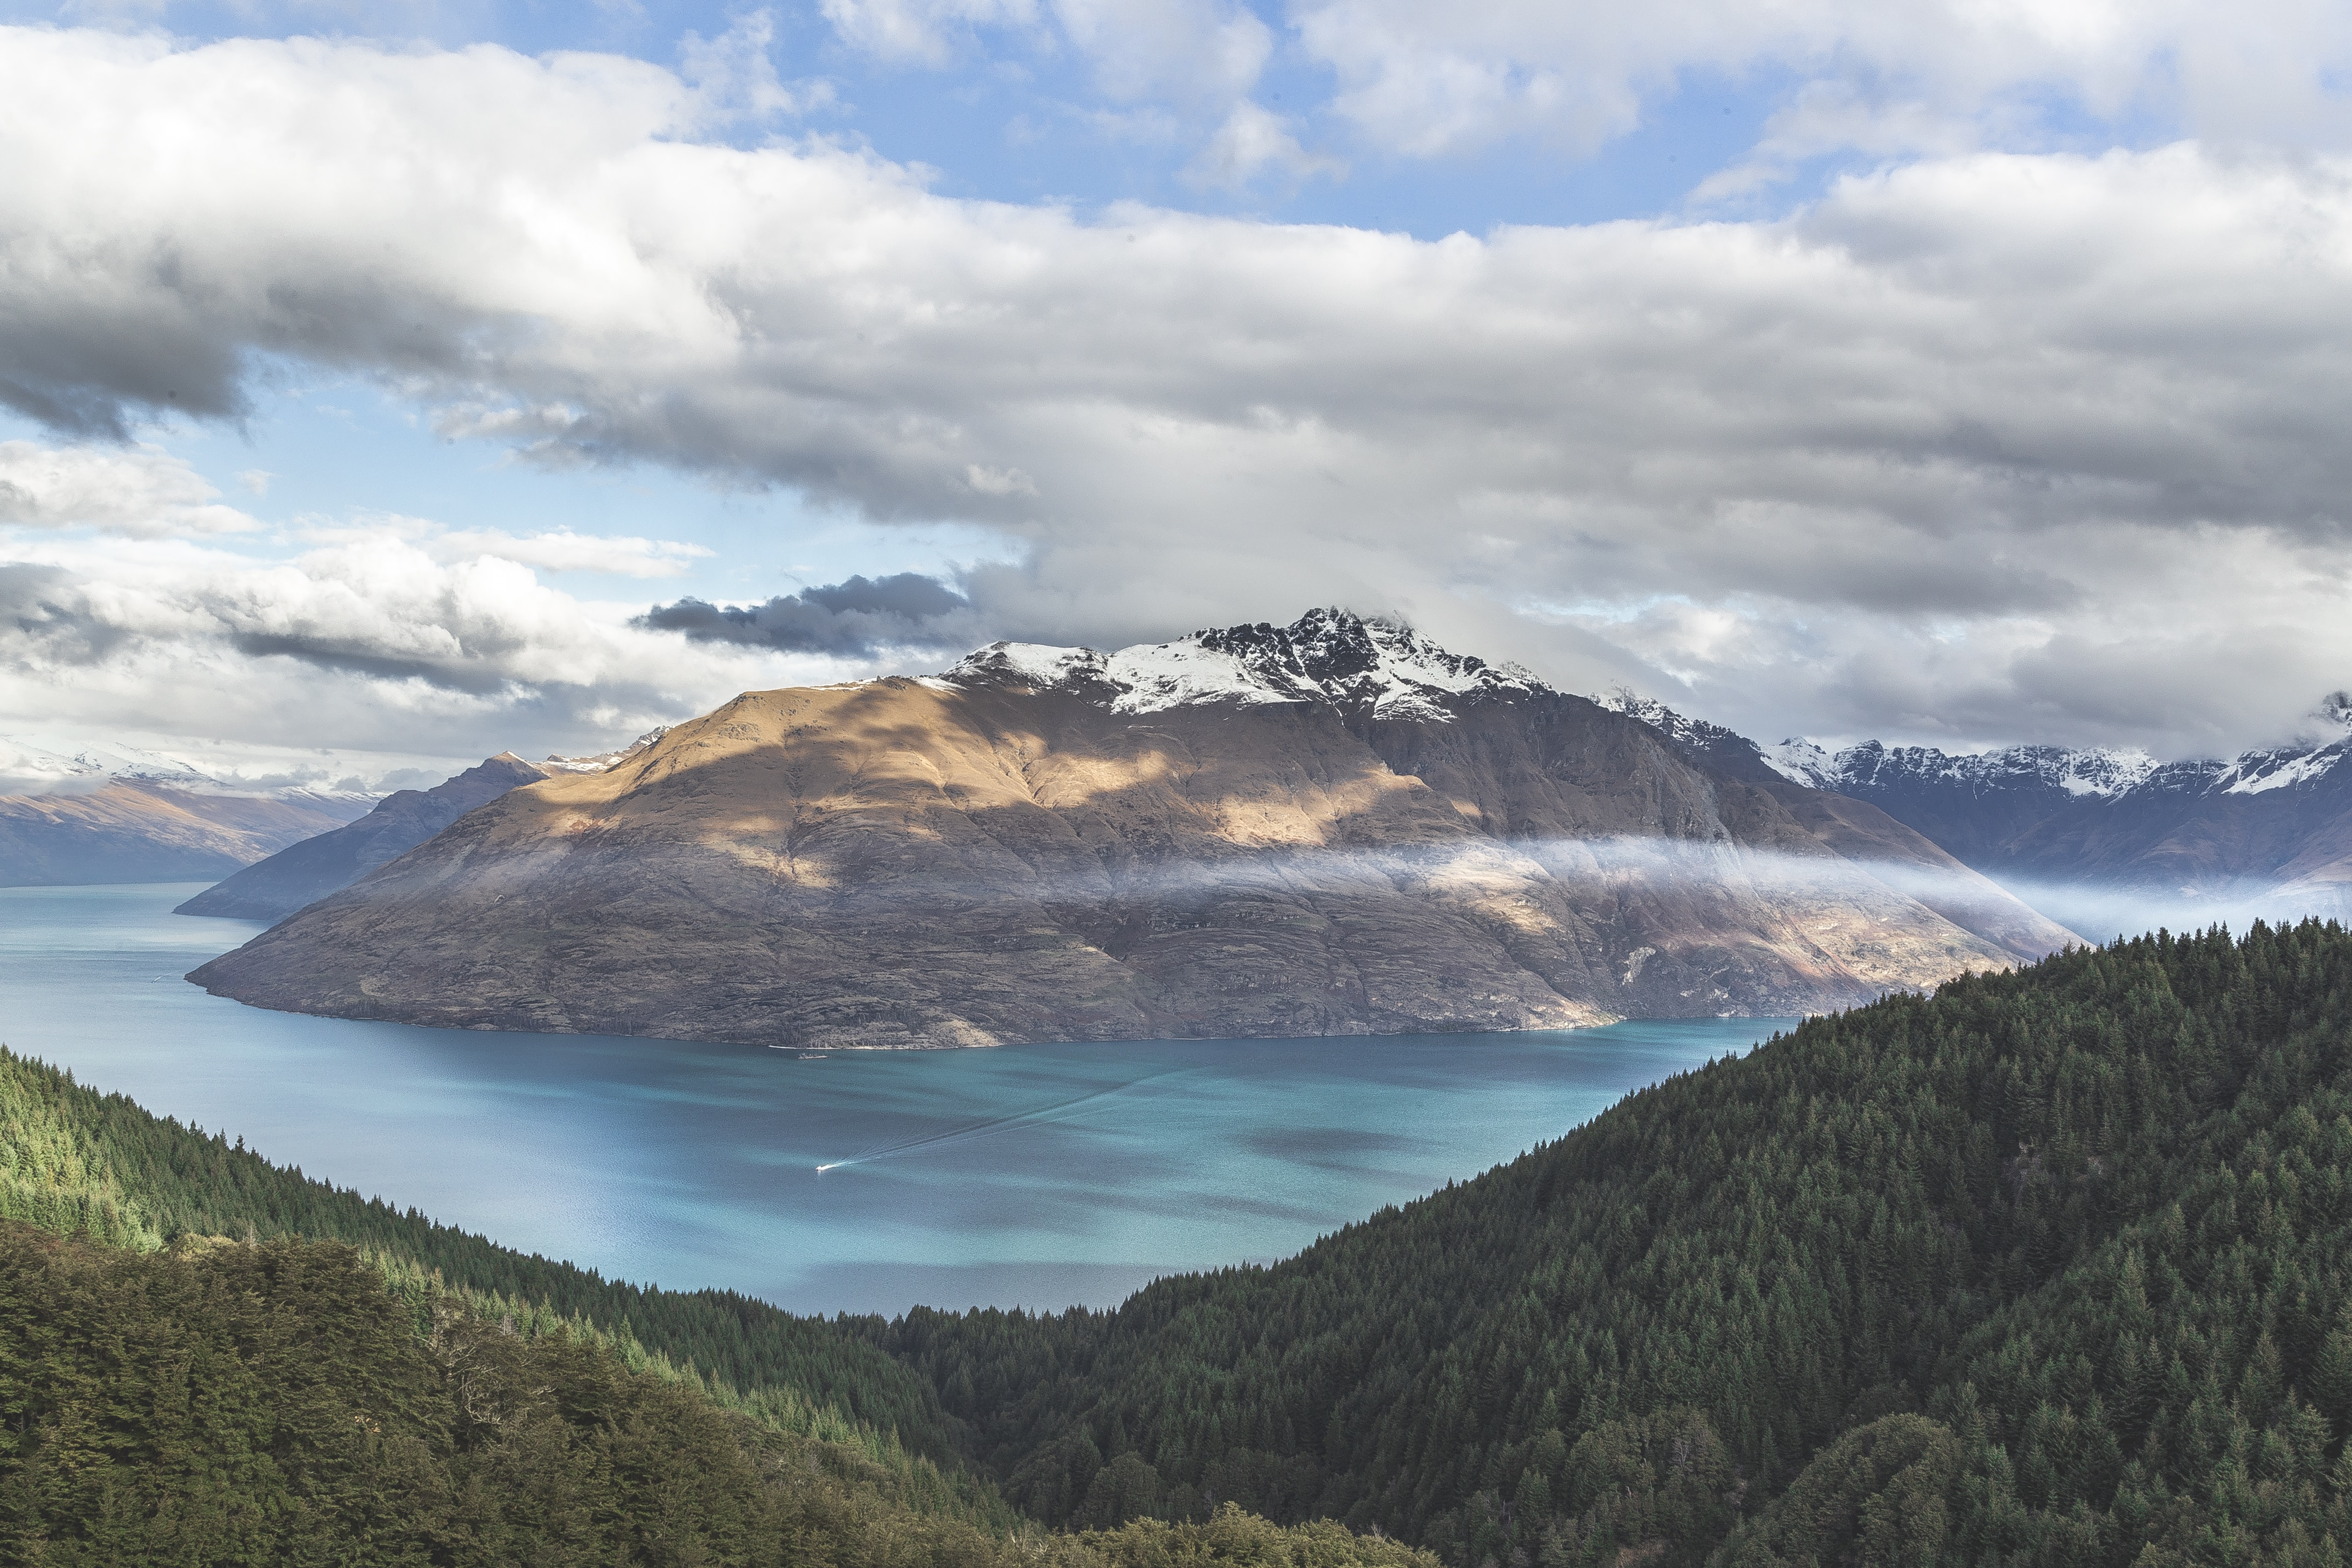 A large azure lake amid snow-capped mountains and wooded hills